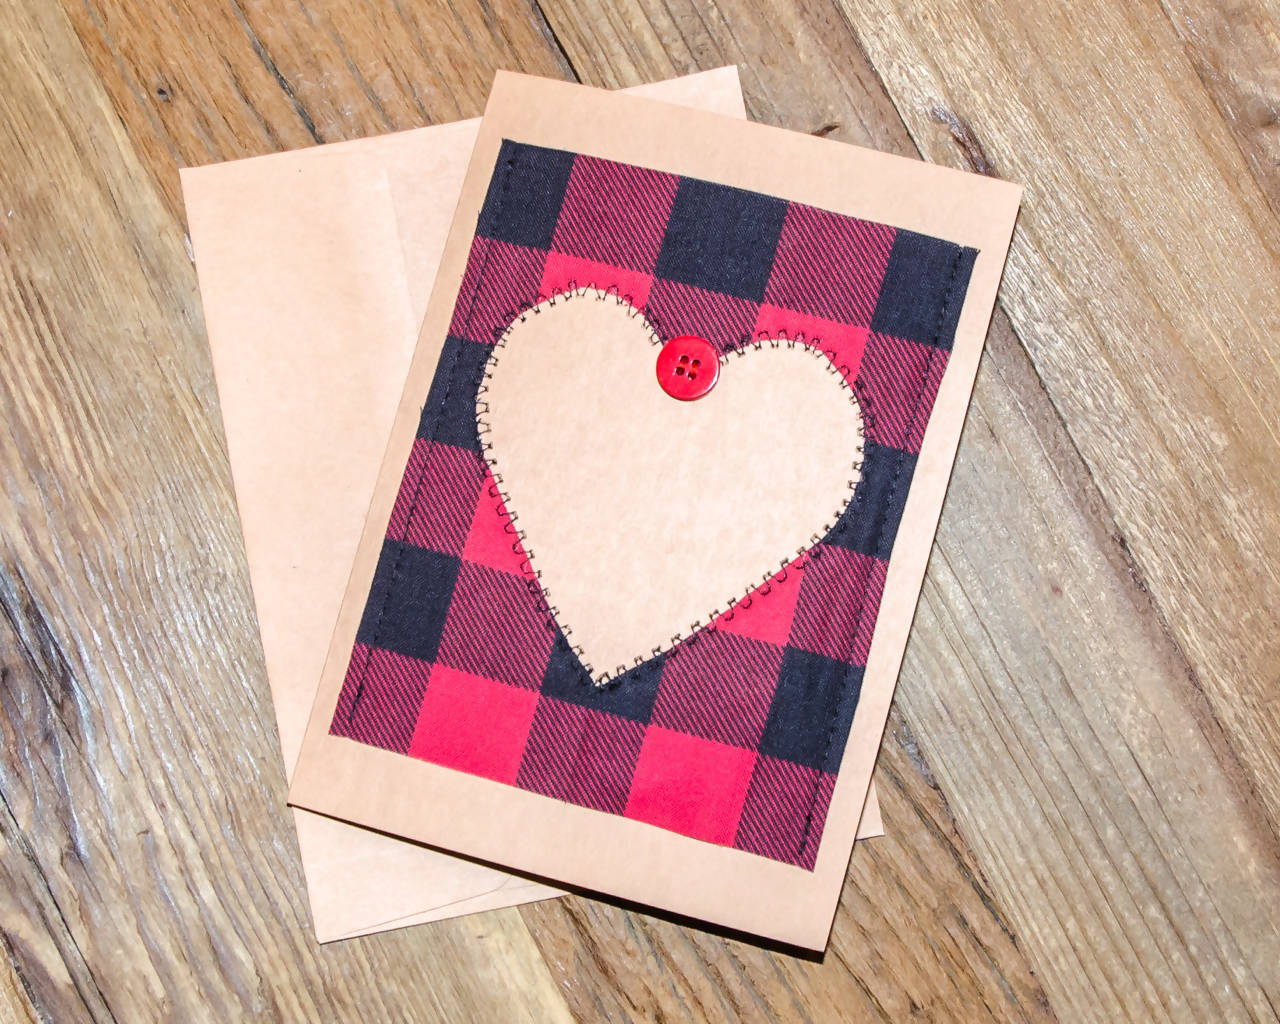 Handmade - Fabric on Paper Greeting Card, Heart Buffalo Plaid - Blank Inside for any occasion/Valentines